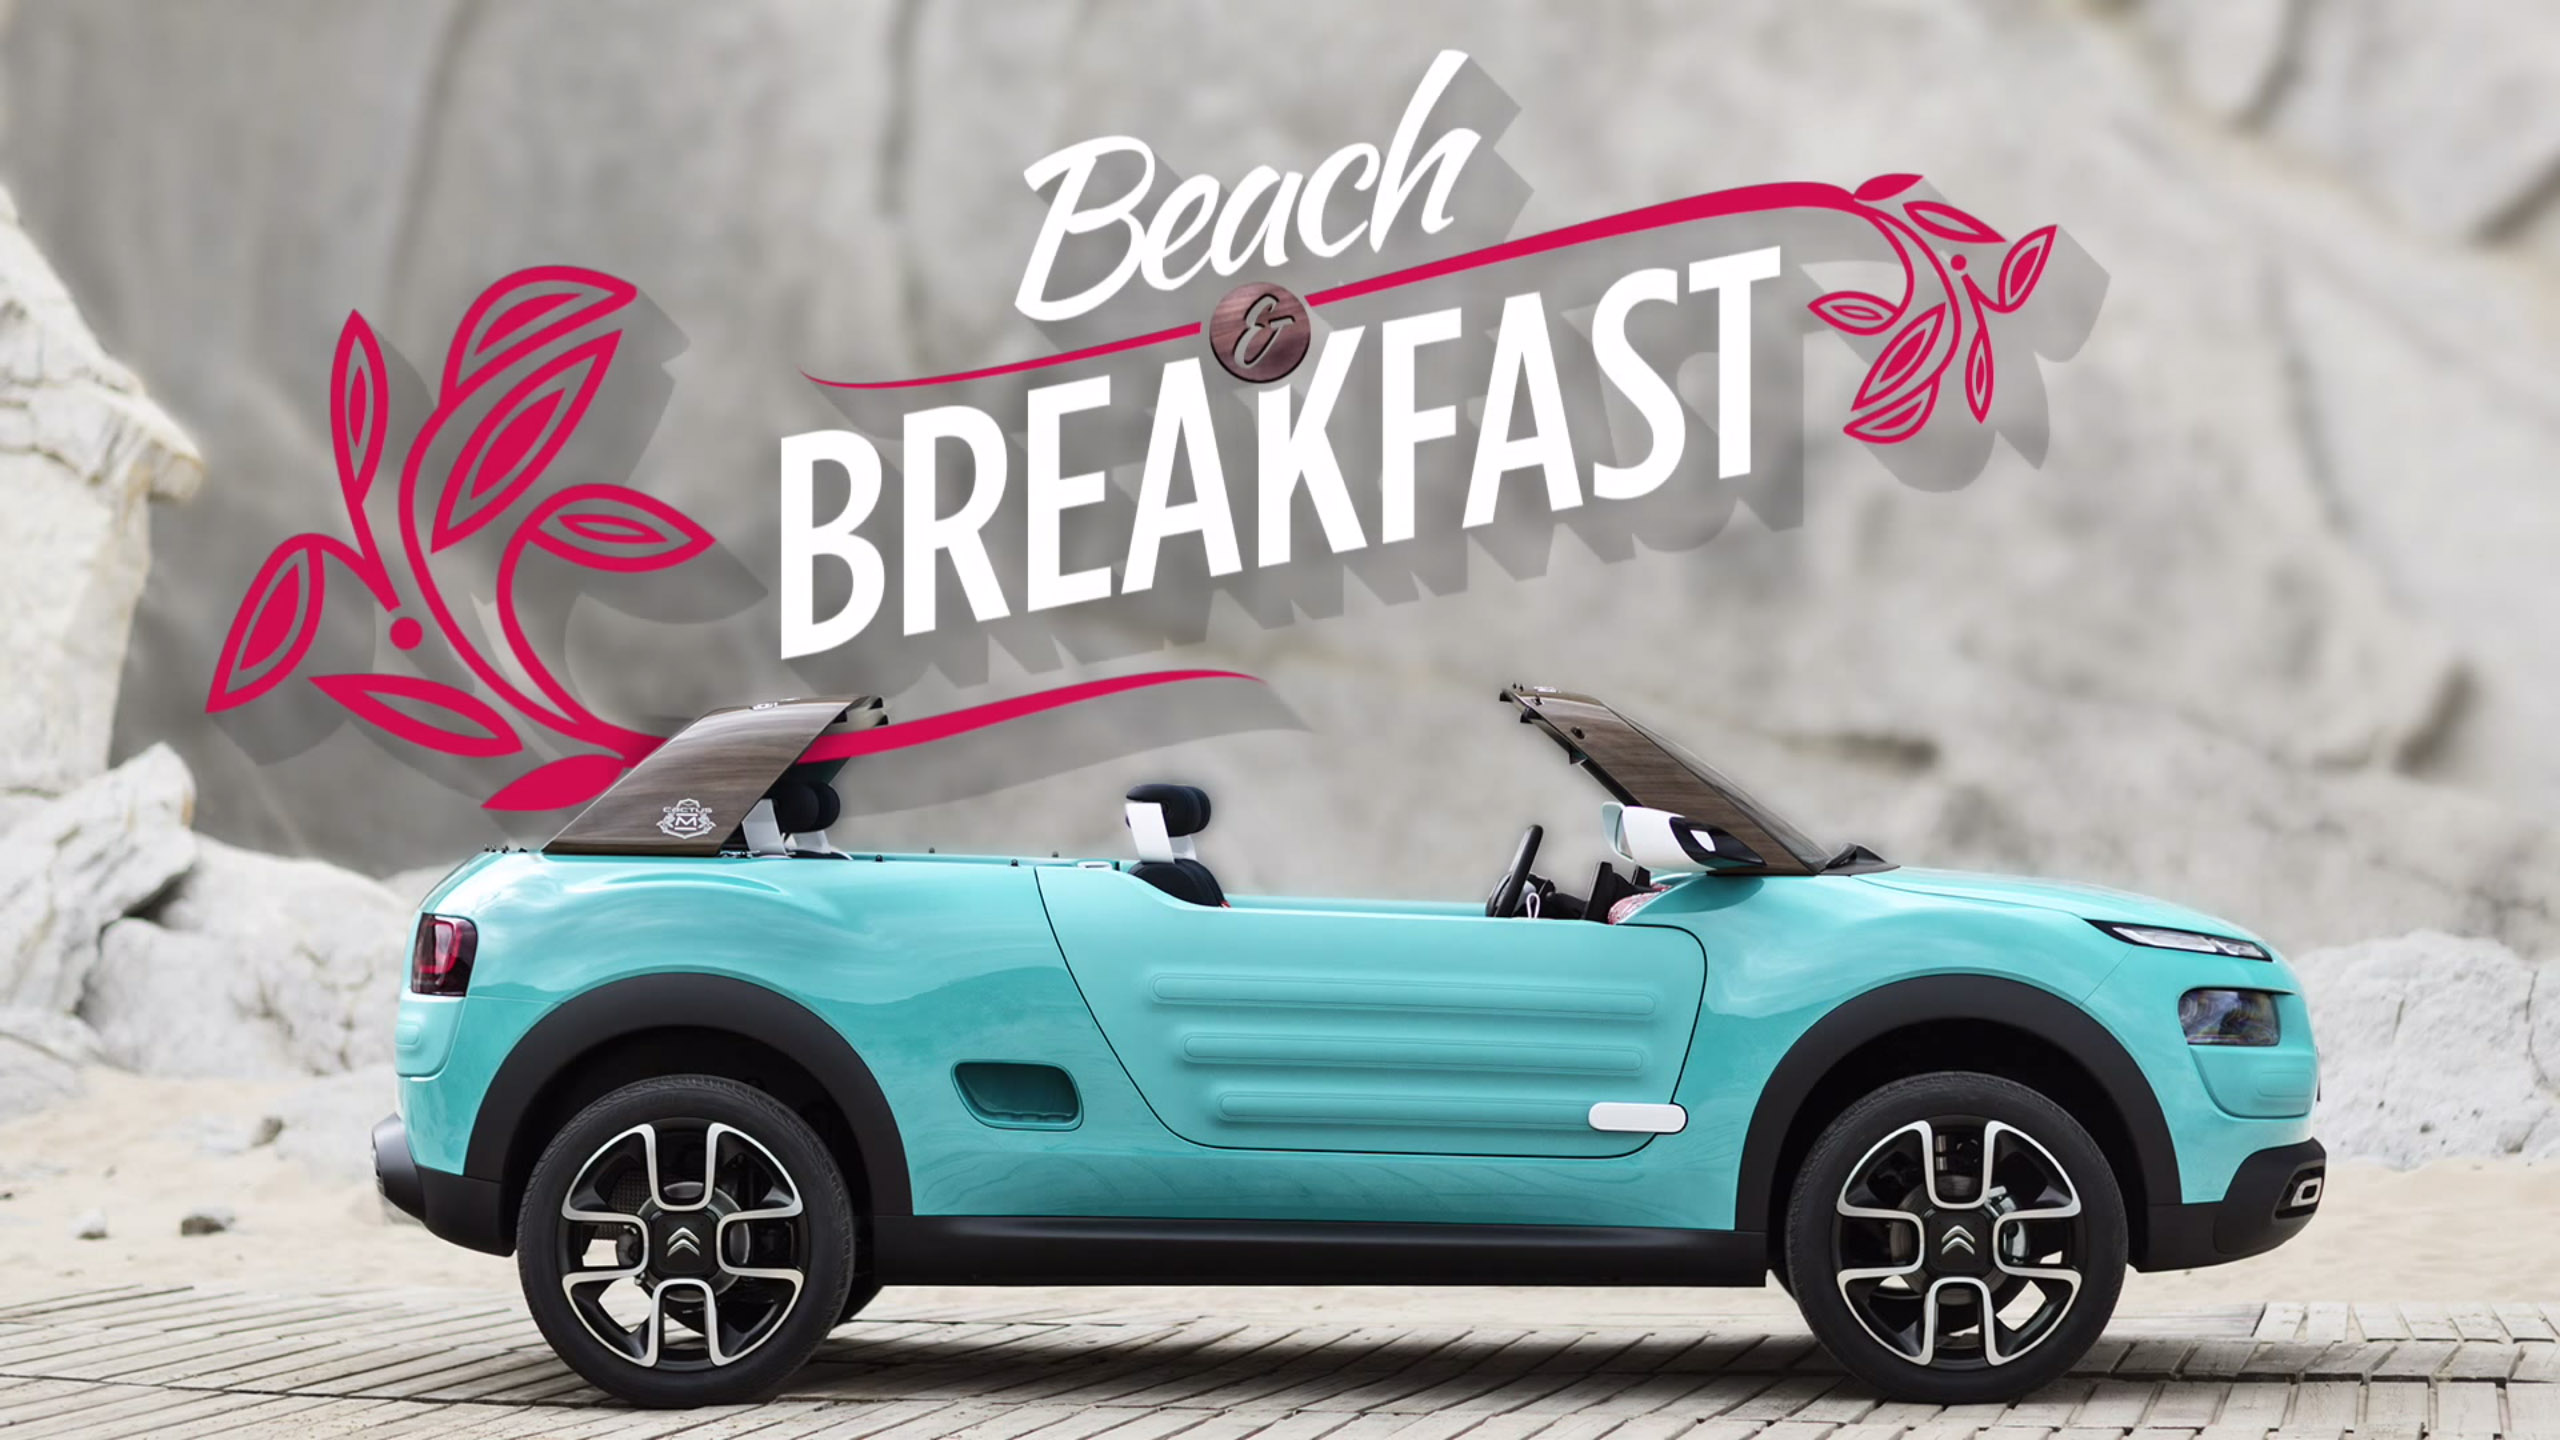 20150915_Citroen Cactus M this is the first motorized BnB